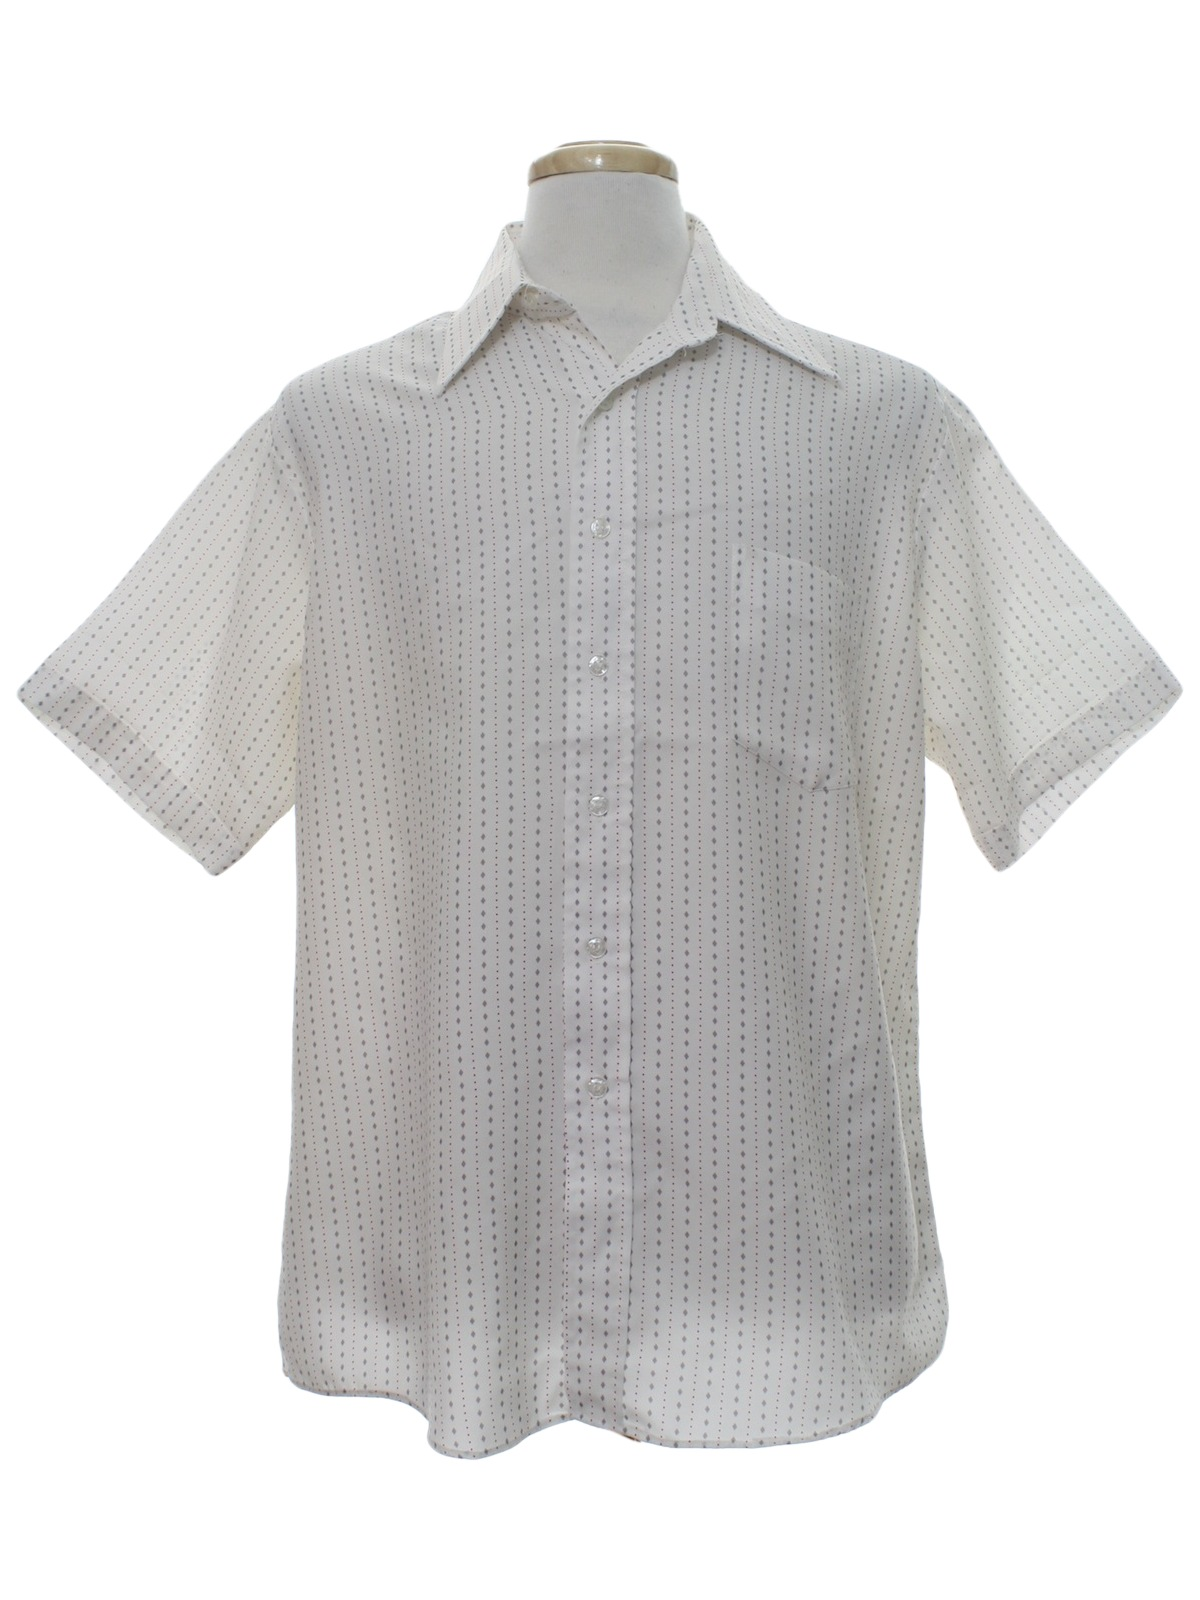 Vintage 1970 39 s shirt 70s kmart mens white background for Kmart button up shirts